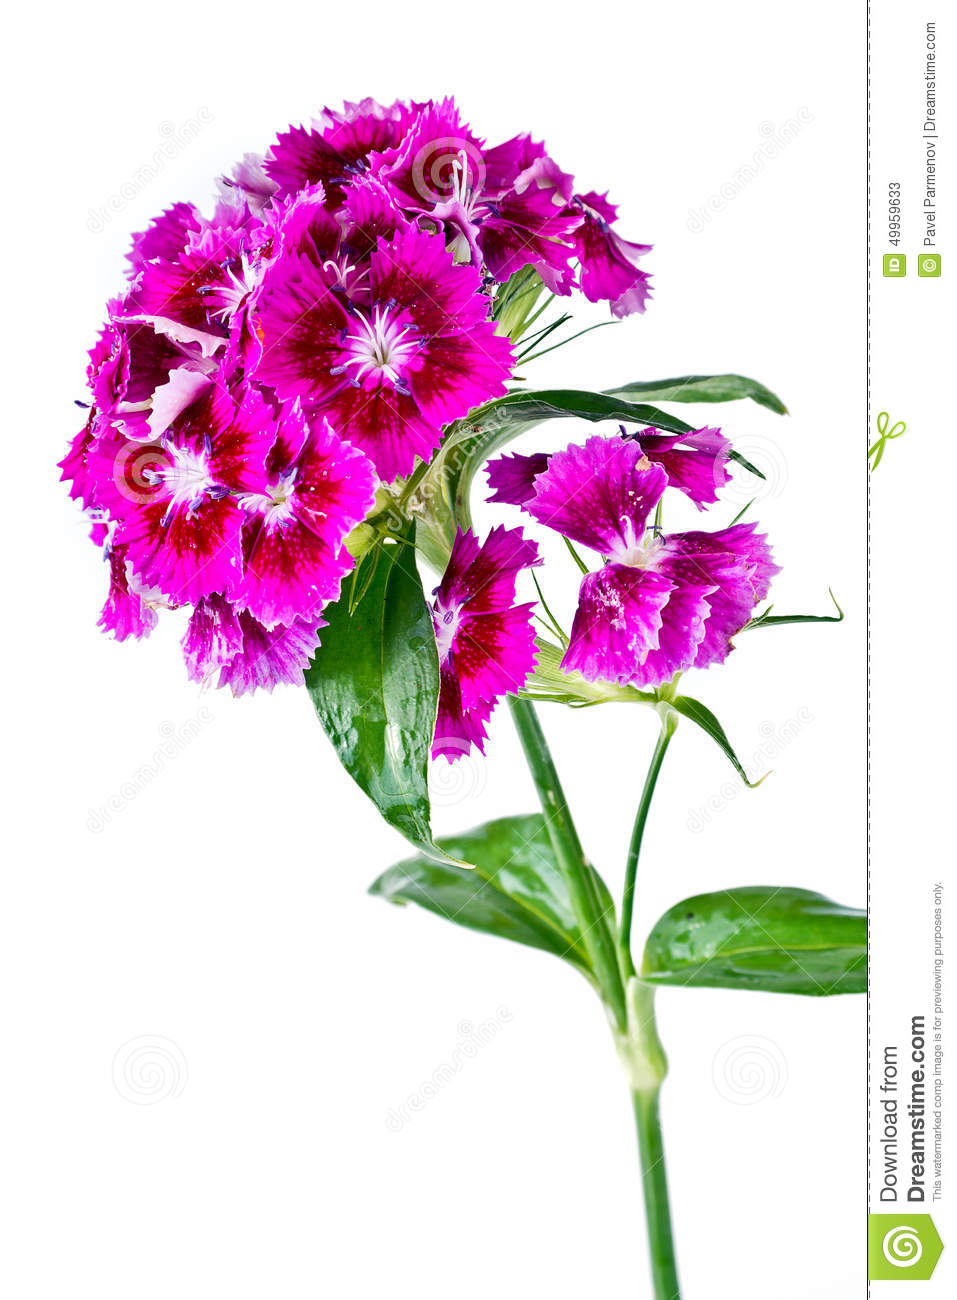 Sweet William Stock Photo.